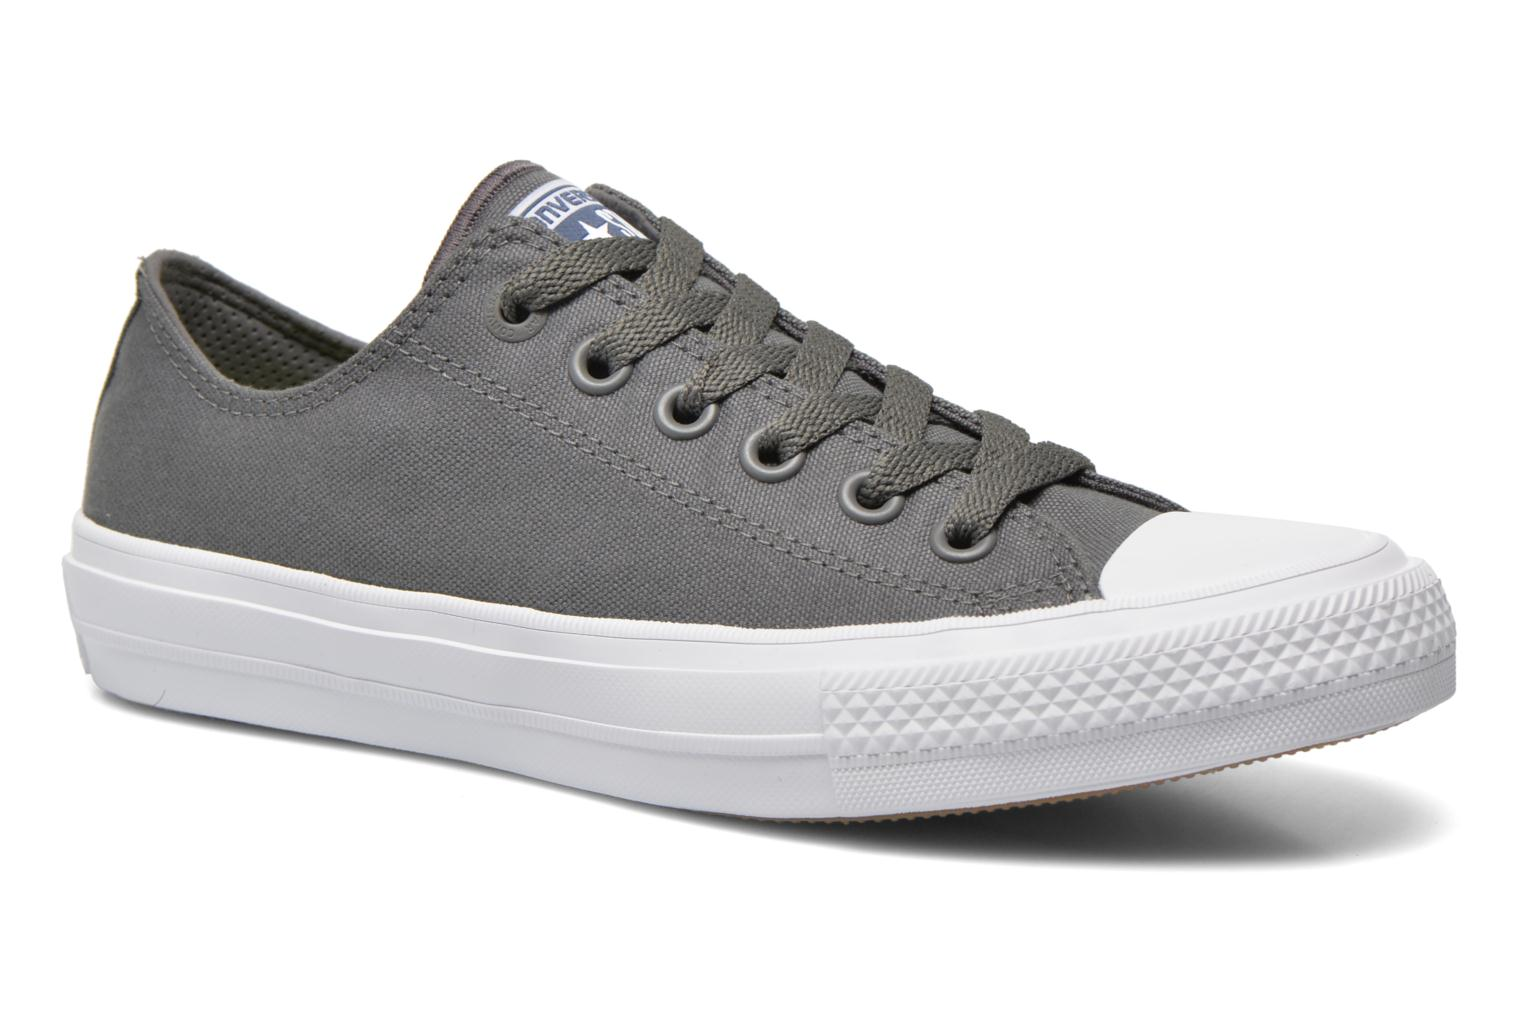 Donna Converse Chuck Taylor All Star Ox W Sneakers Grigio